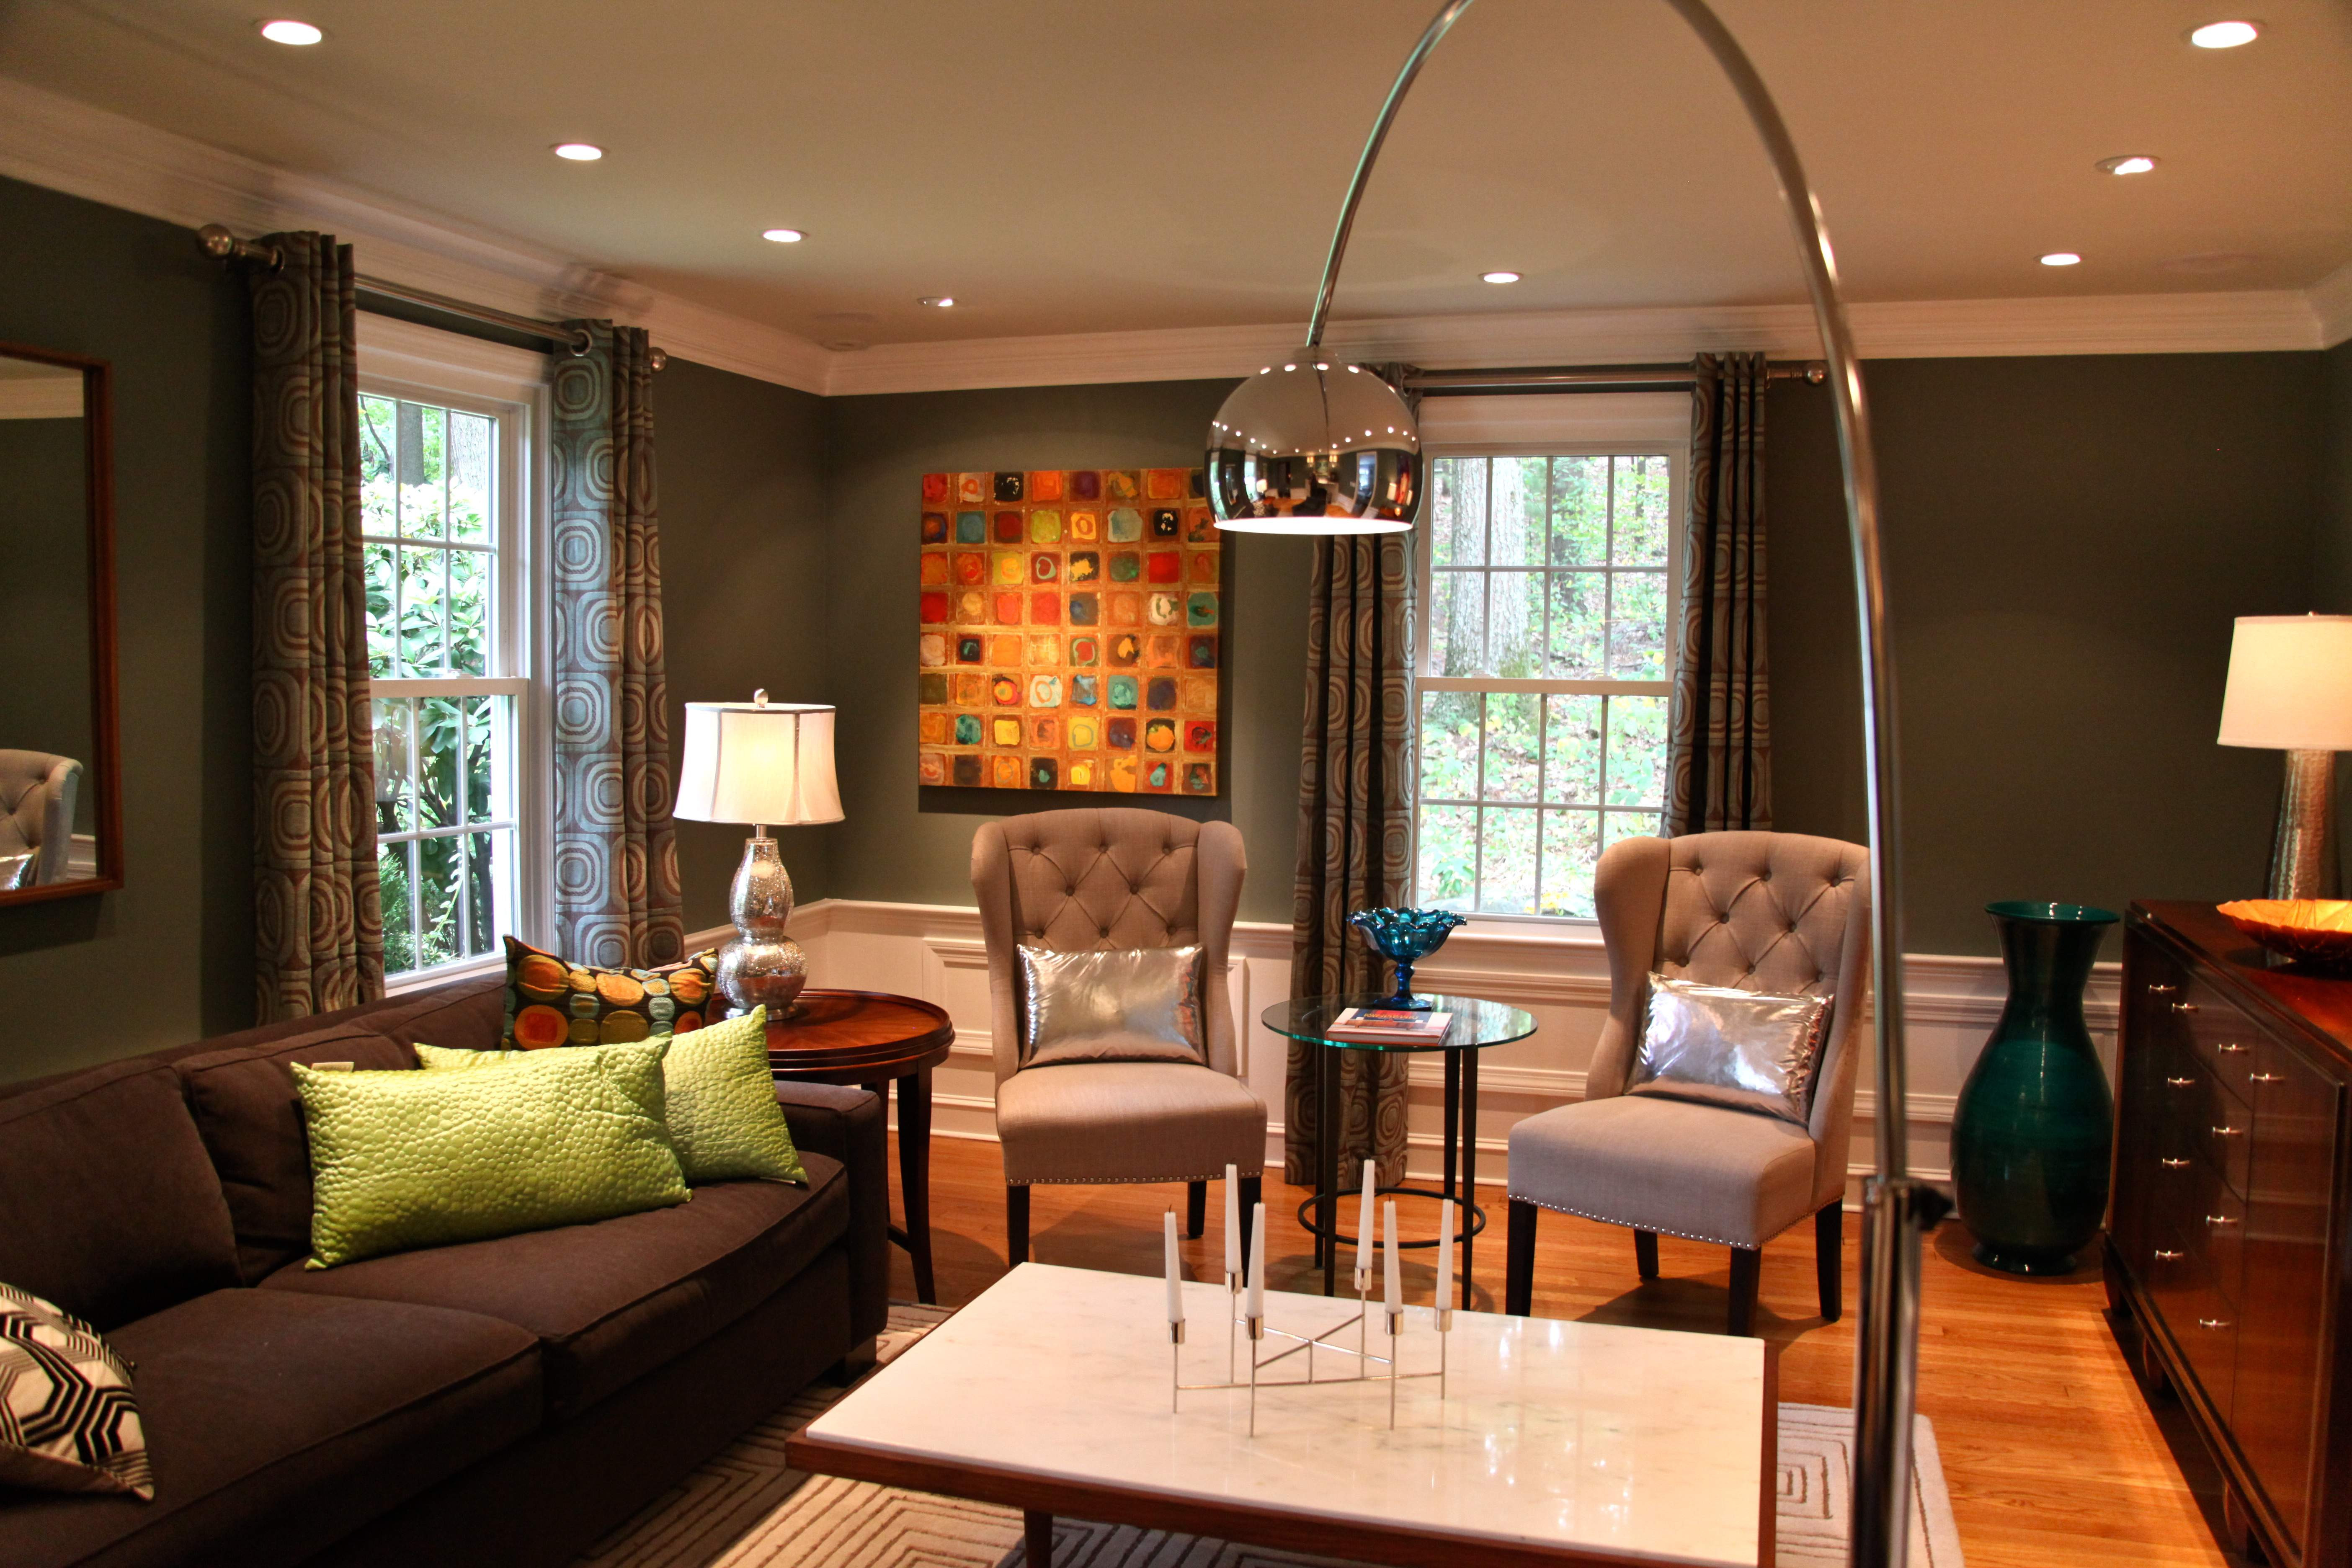 Best ideas about Living Room Lamps . Save or Pin Blog How to Choose Home Lighting Now.